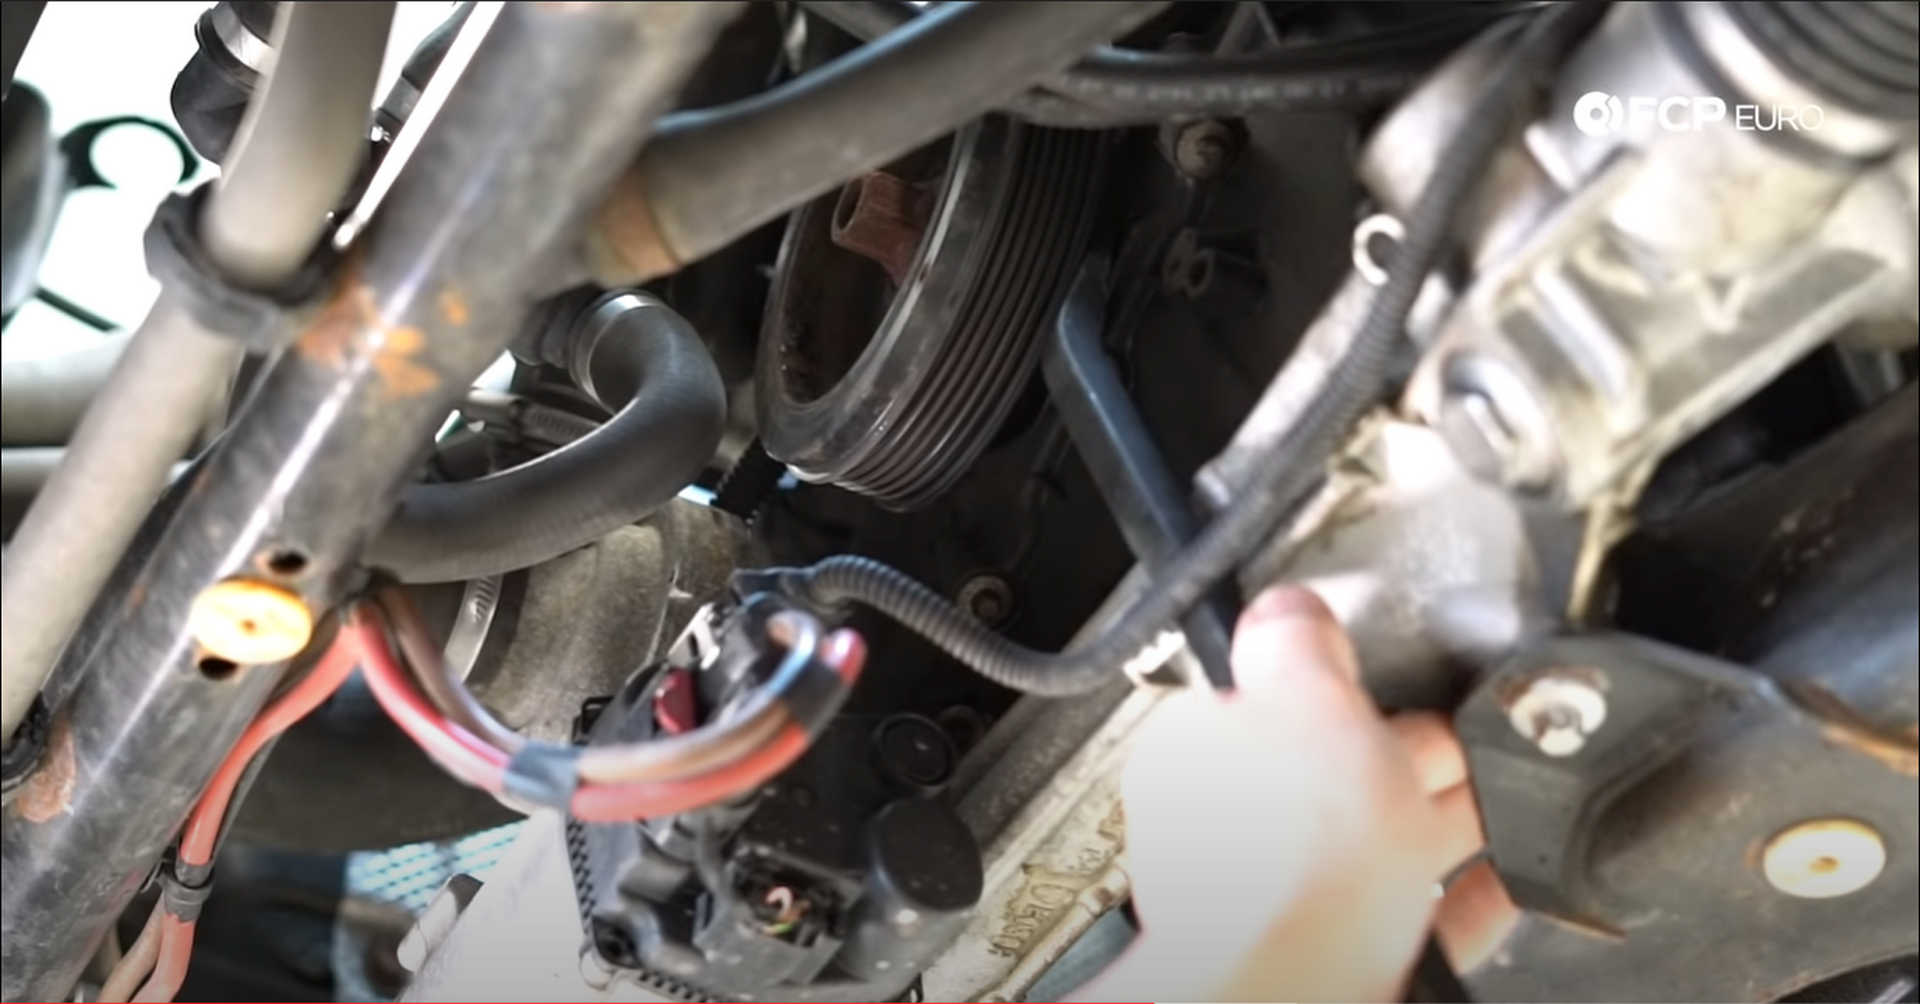 DIY BMW N20 Timing Chain removing the vibration dampener